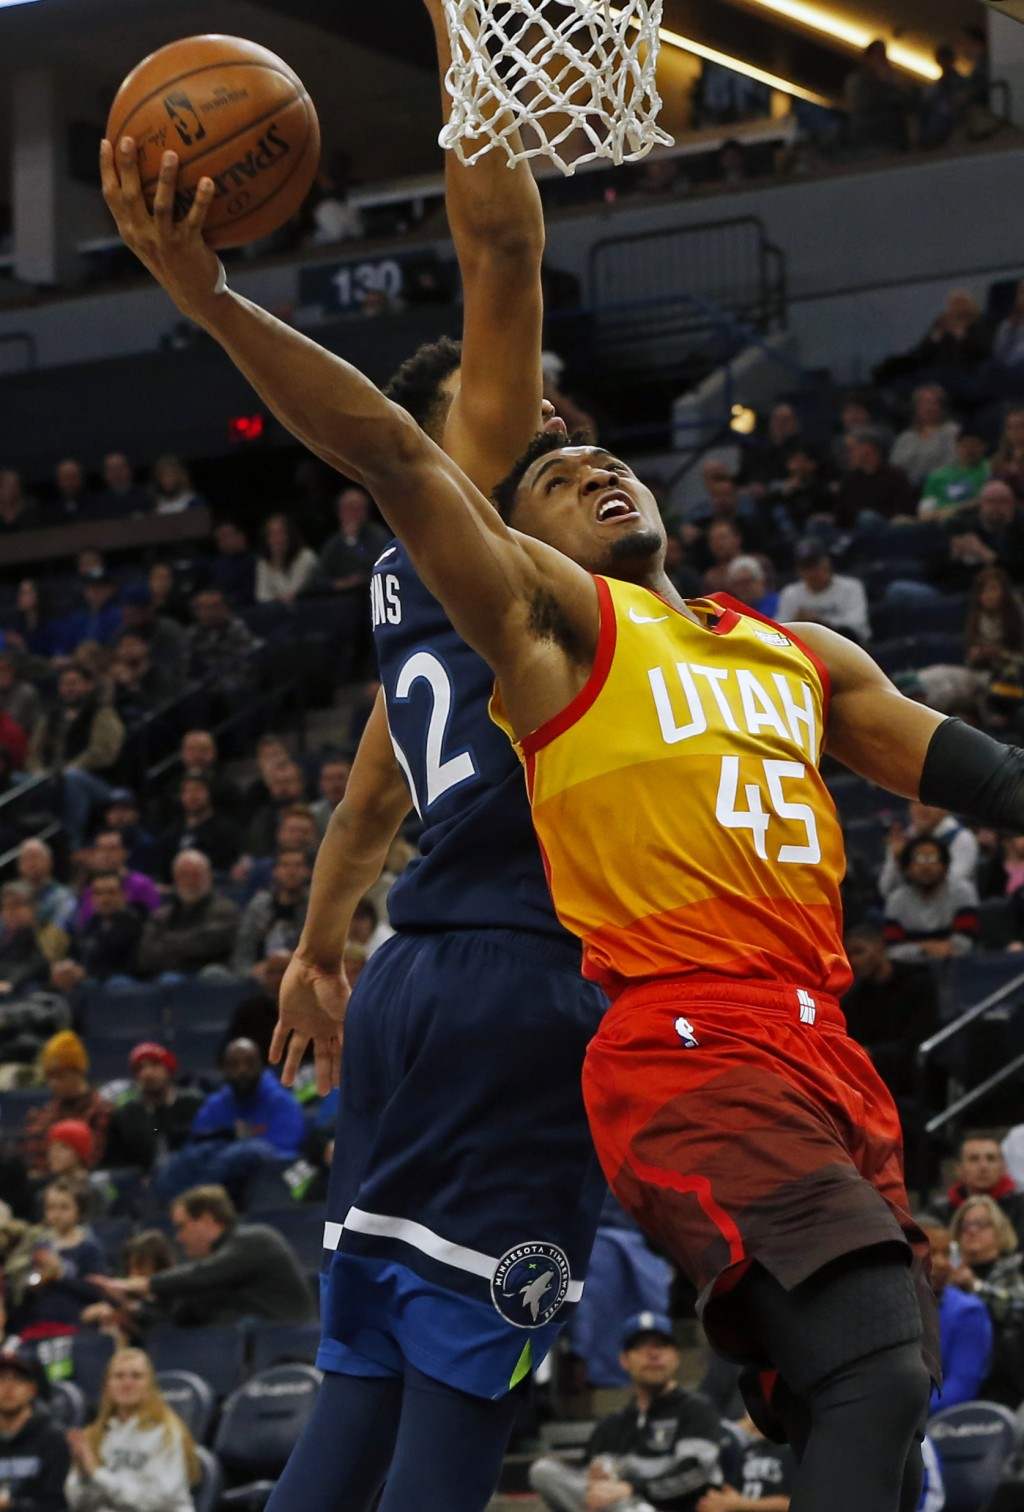 Utah Jazz's Donovan Mitchell, right, lays up a shot as Minnesota Timberwolves' Karl-Anthony Towns defends in the first half of an NBA basketball game ...